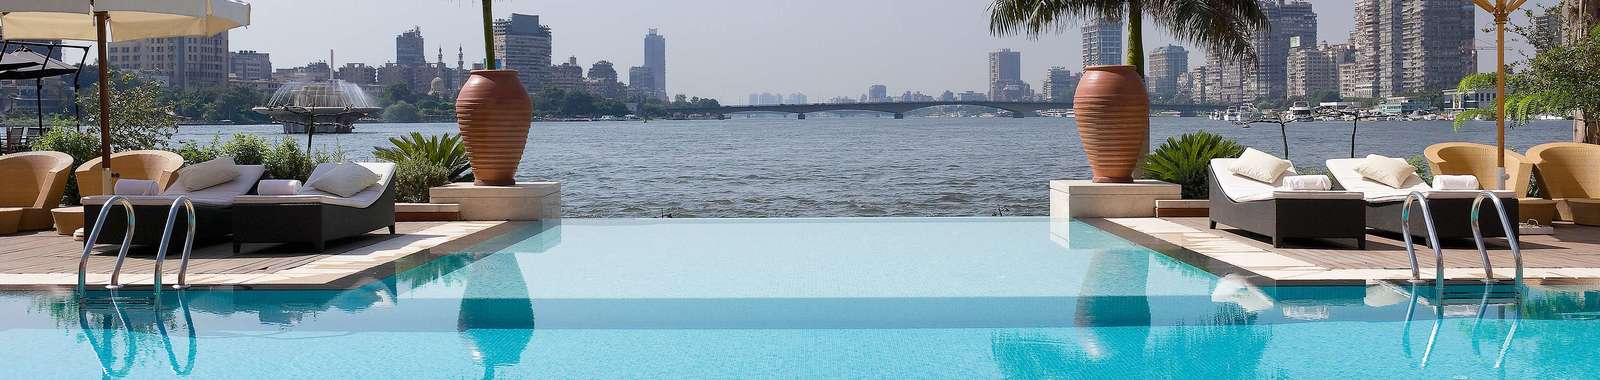 Cairo_Sofitel_Pool_Nile_view